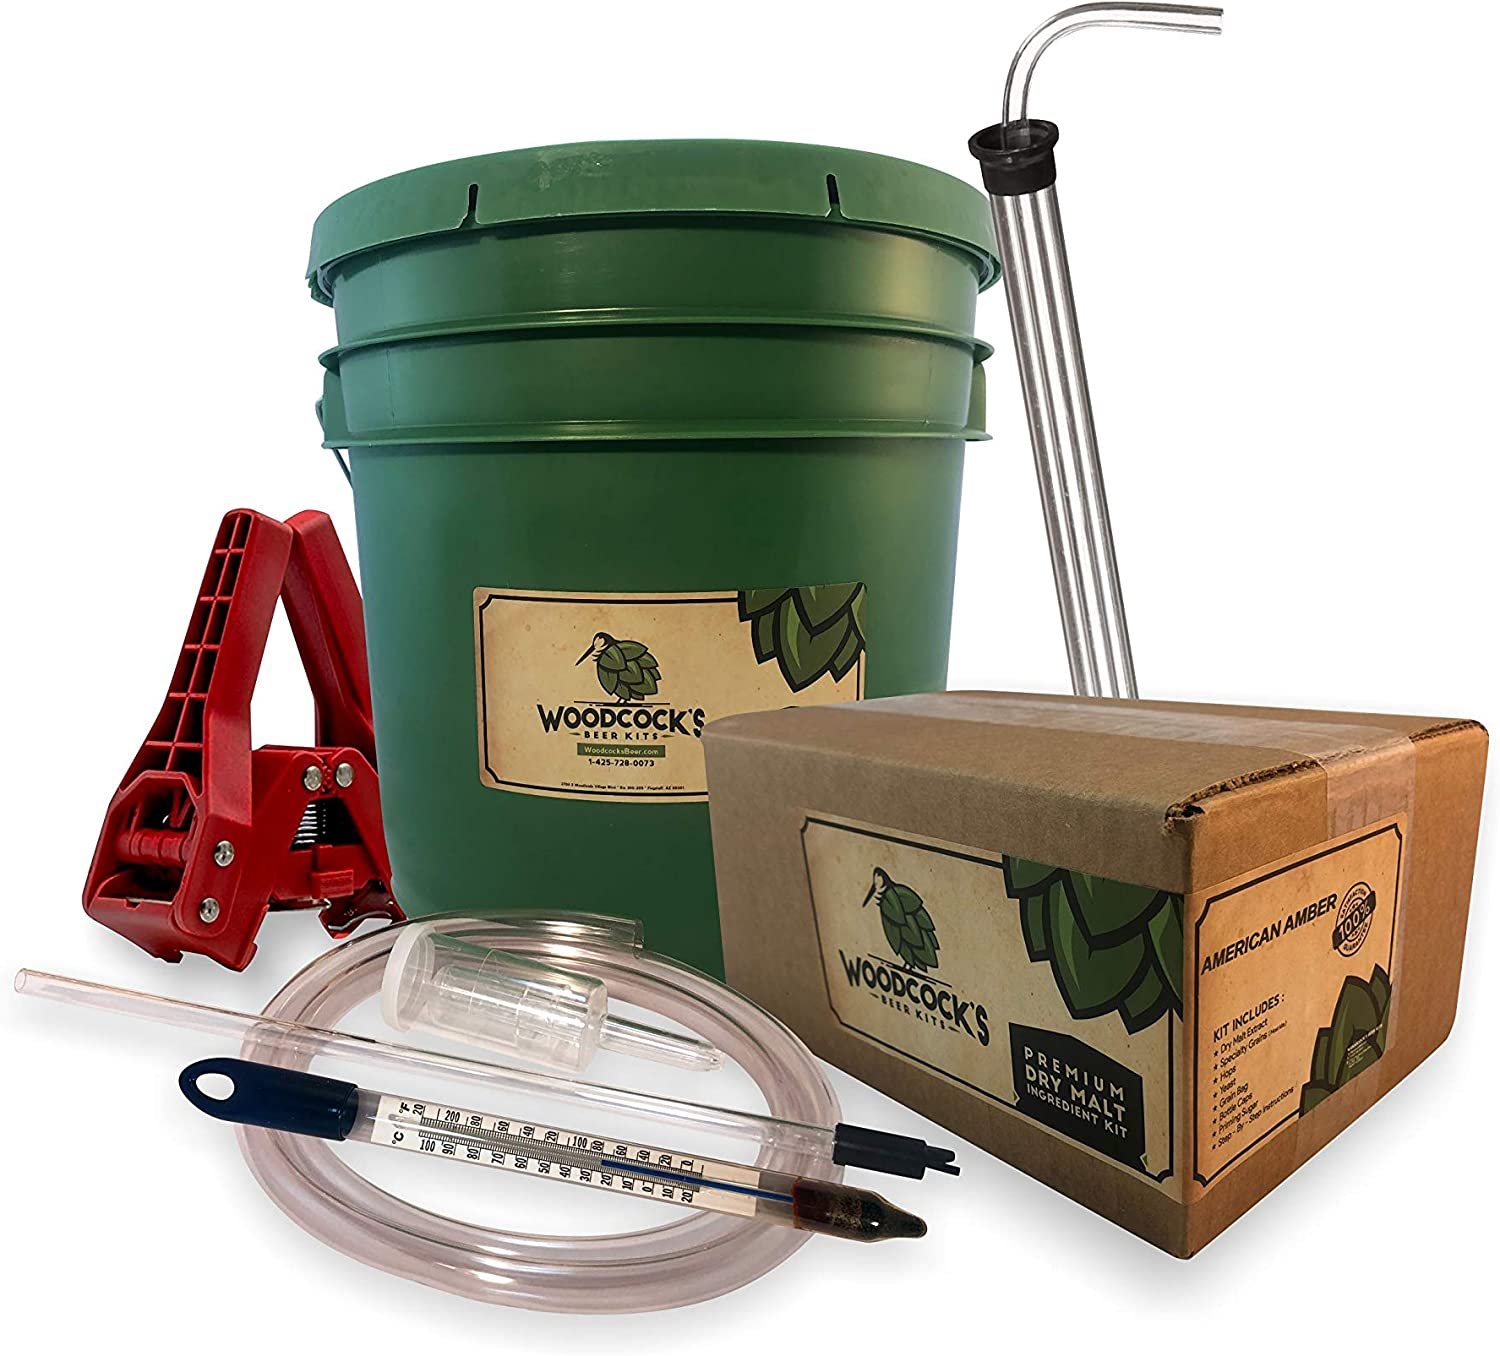 2-Gallon Home Beer Brewing Kit with American Amber Ale - Complete Homebrew Starter Set - Ideal Beginners Beer Making Kit with Everything to Make Your Own Craft Brew - Many Refill Kits Available